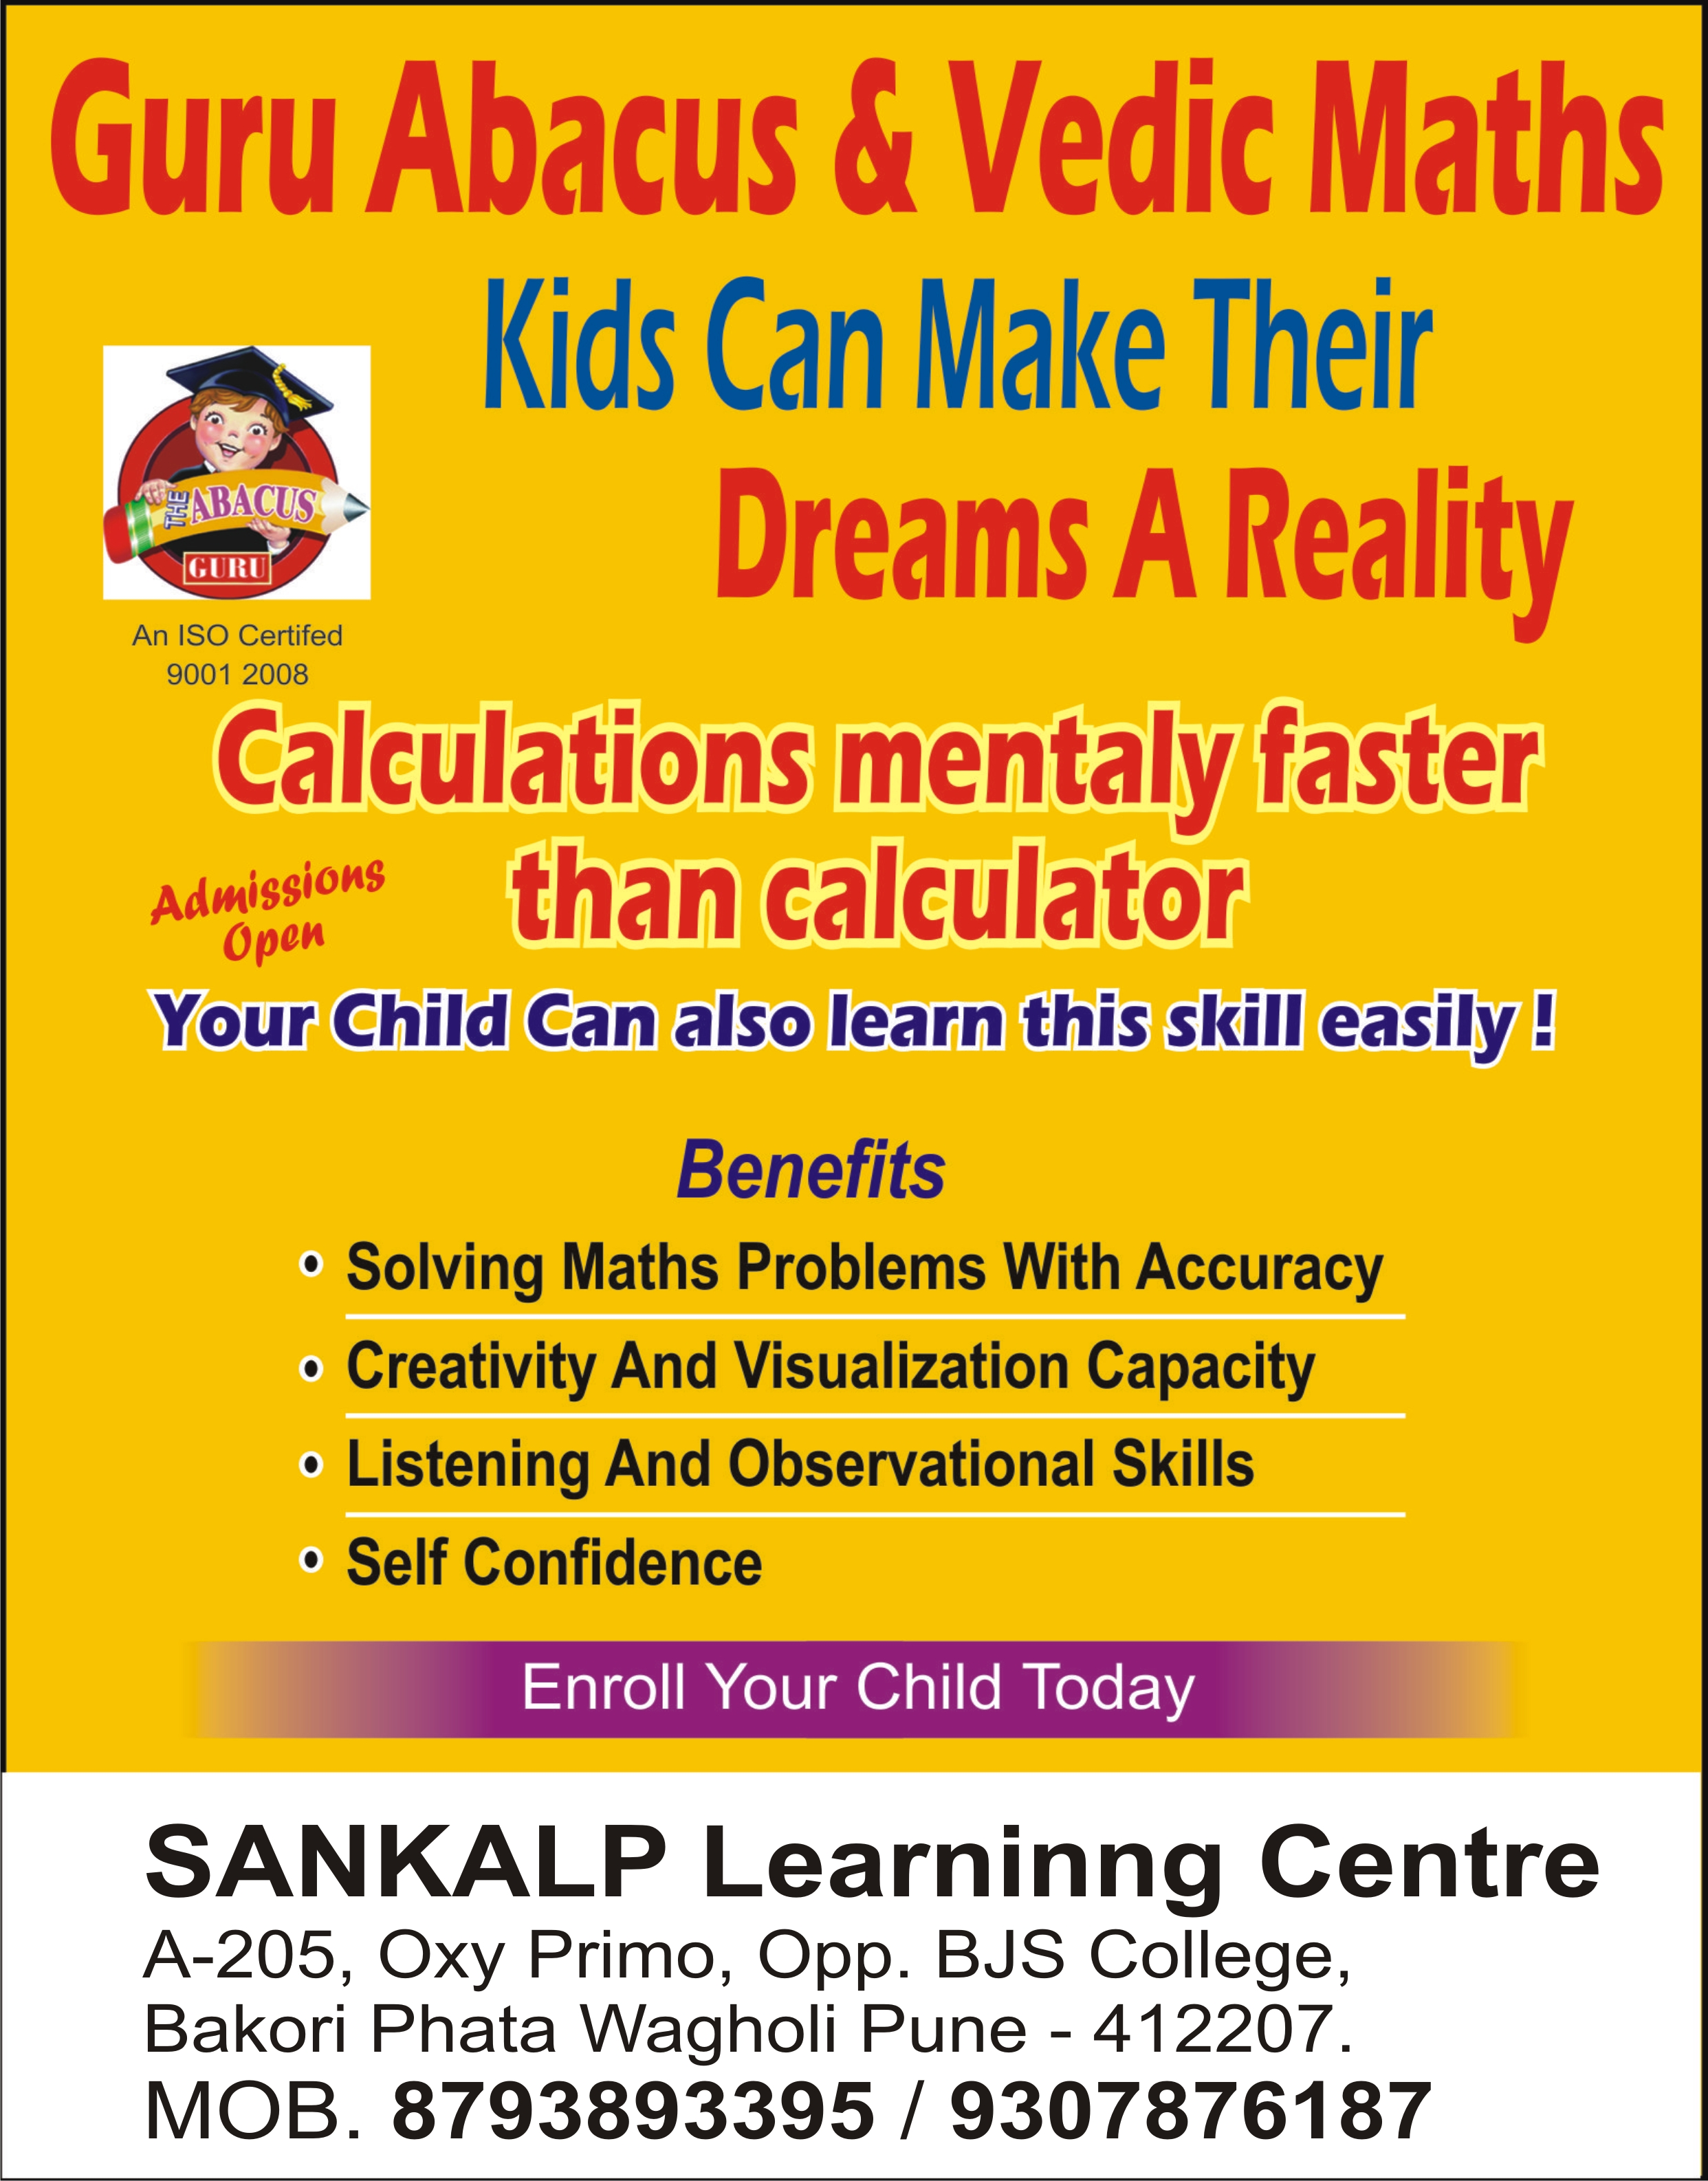 Abacus Classes Vedic Maths Classes In Bakori Phata Sankalp Learninng Center Abacus In Wagholi